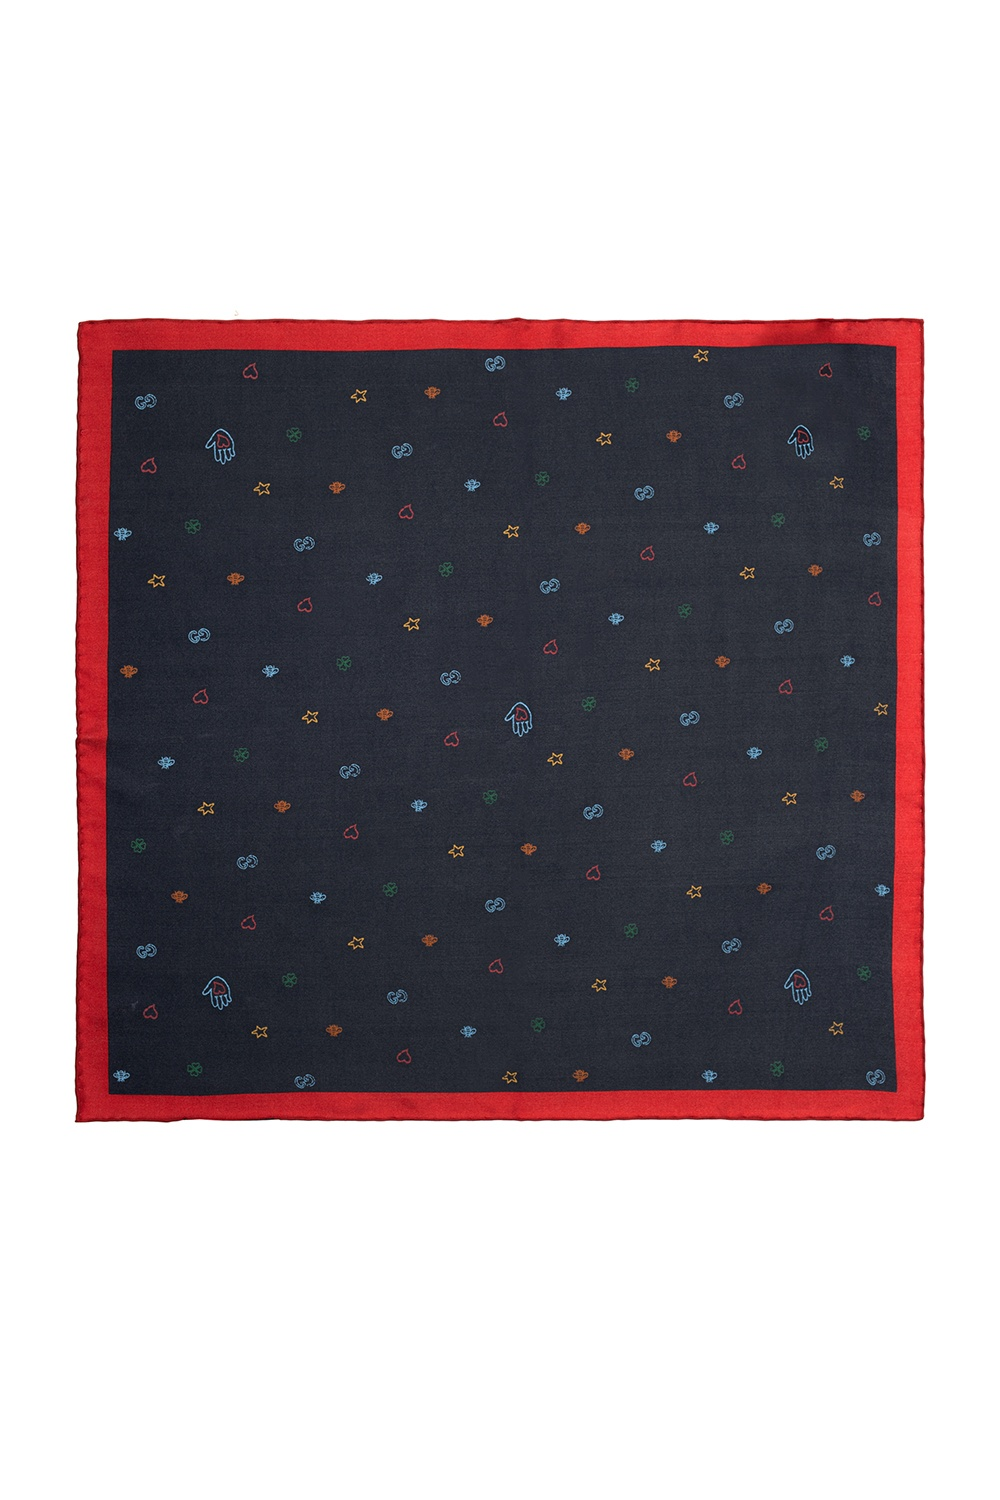 Gucci Patterned pocket square